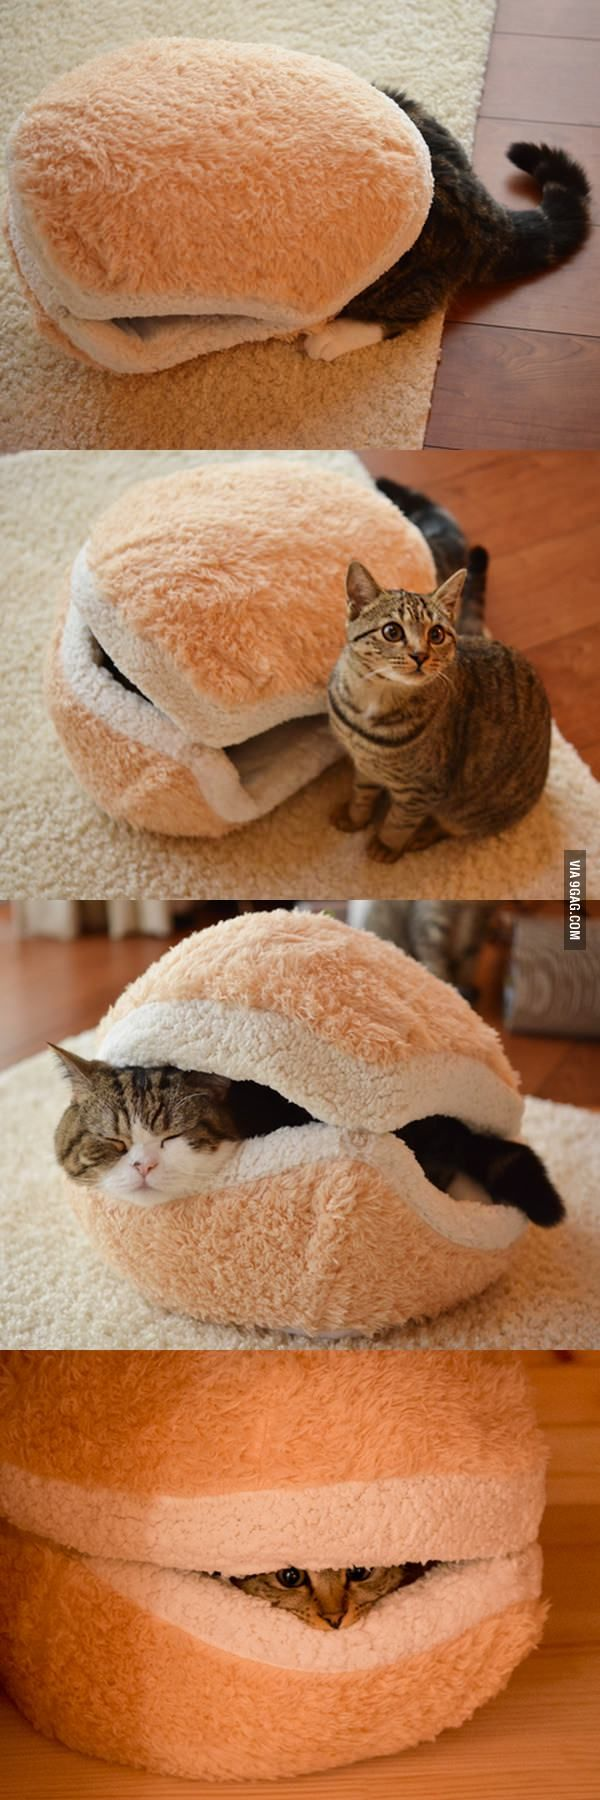 Cat Burger - My cat would go NUTS for this!! What a great idea!